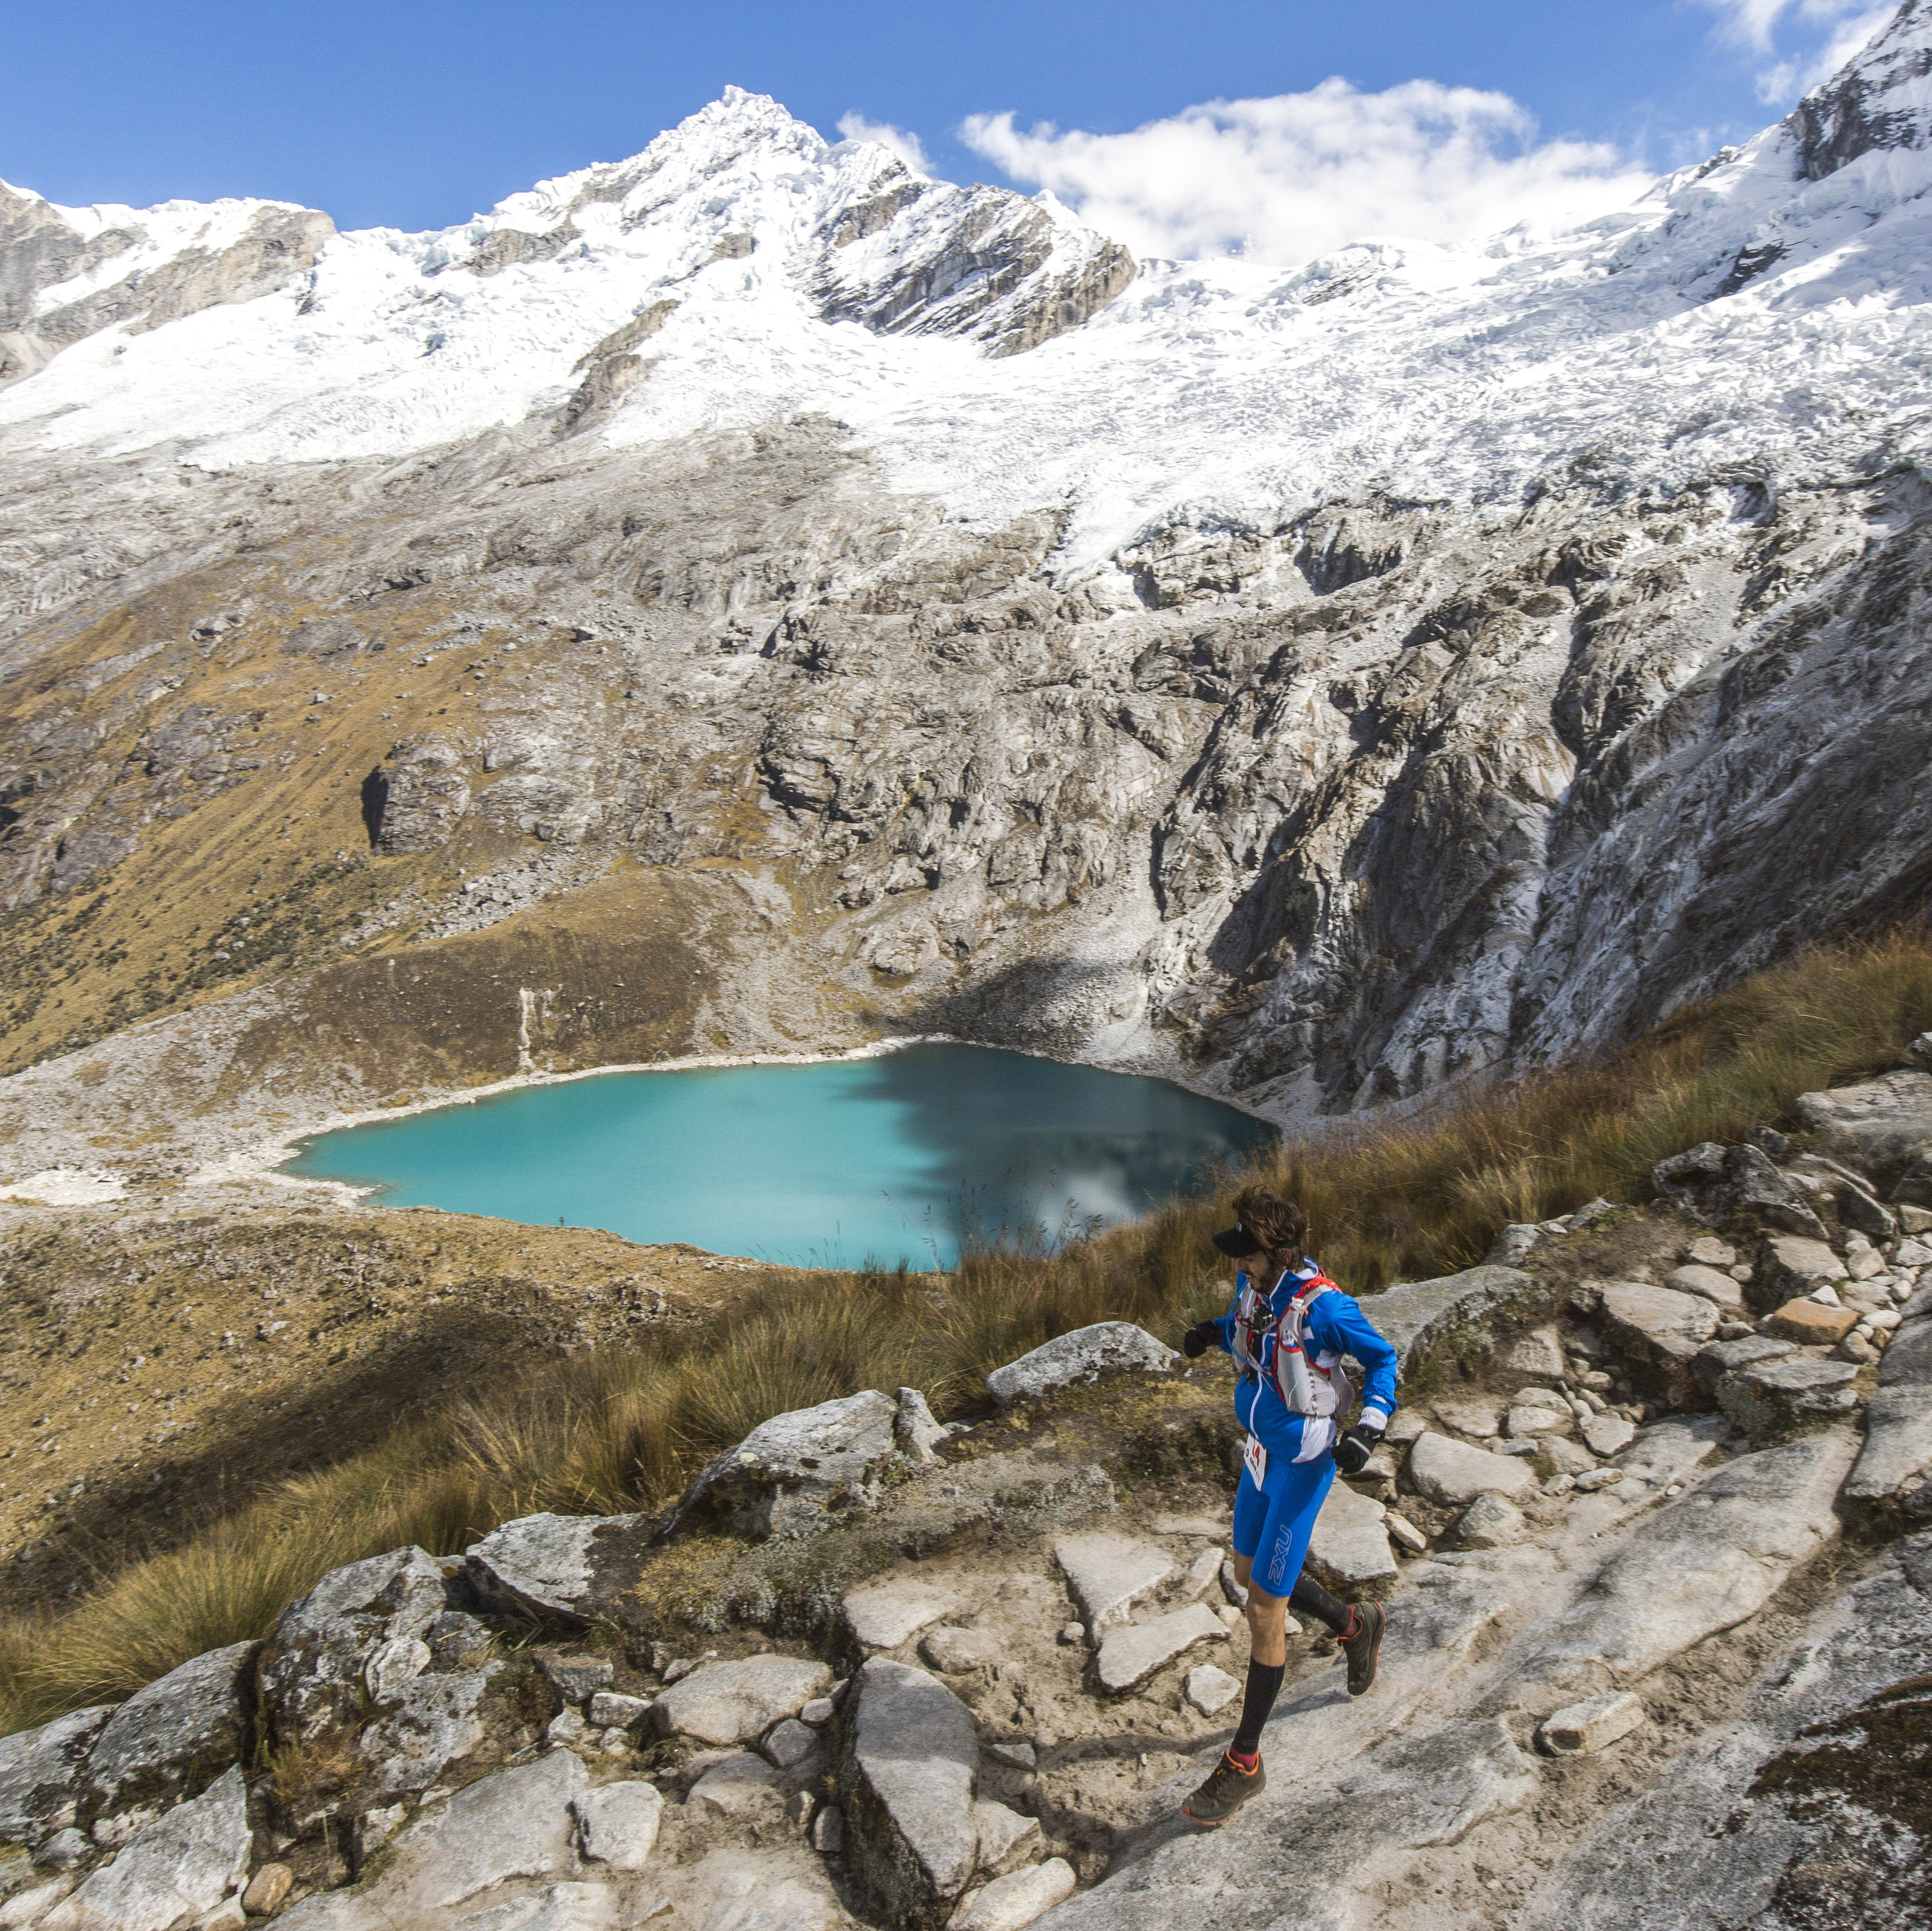 SIERRA ANDINA PACKAGE TRIP - 9-Day all inclusive package to the premier trail running event in the Cordillera Blanca • August 3-11, 2019